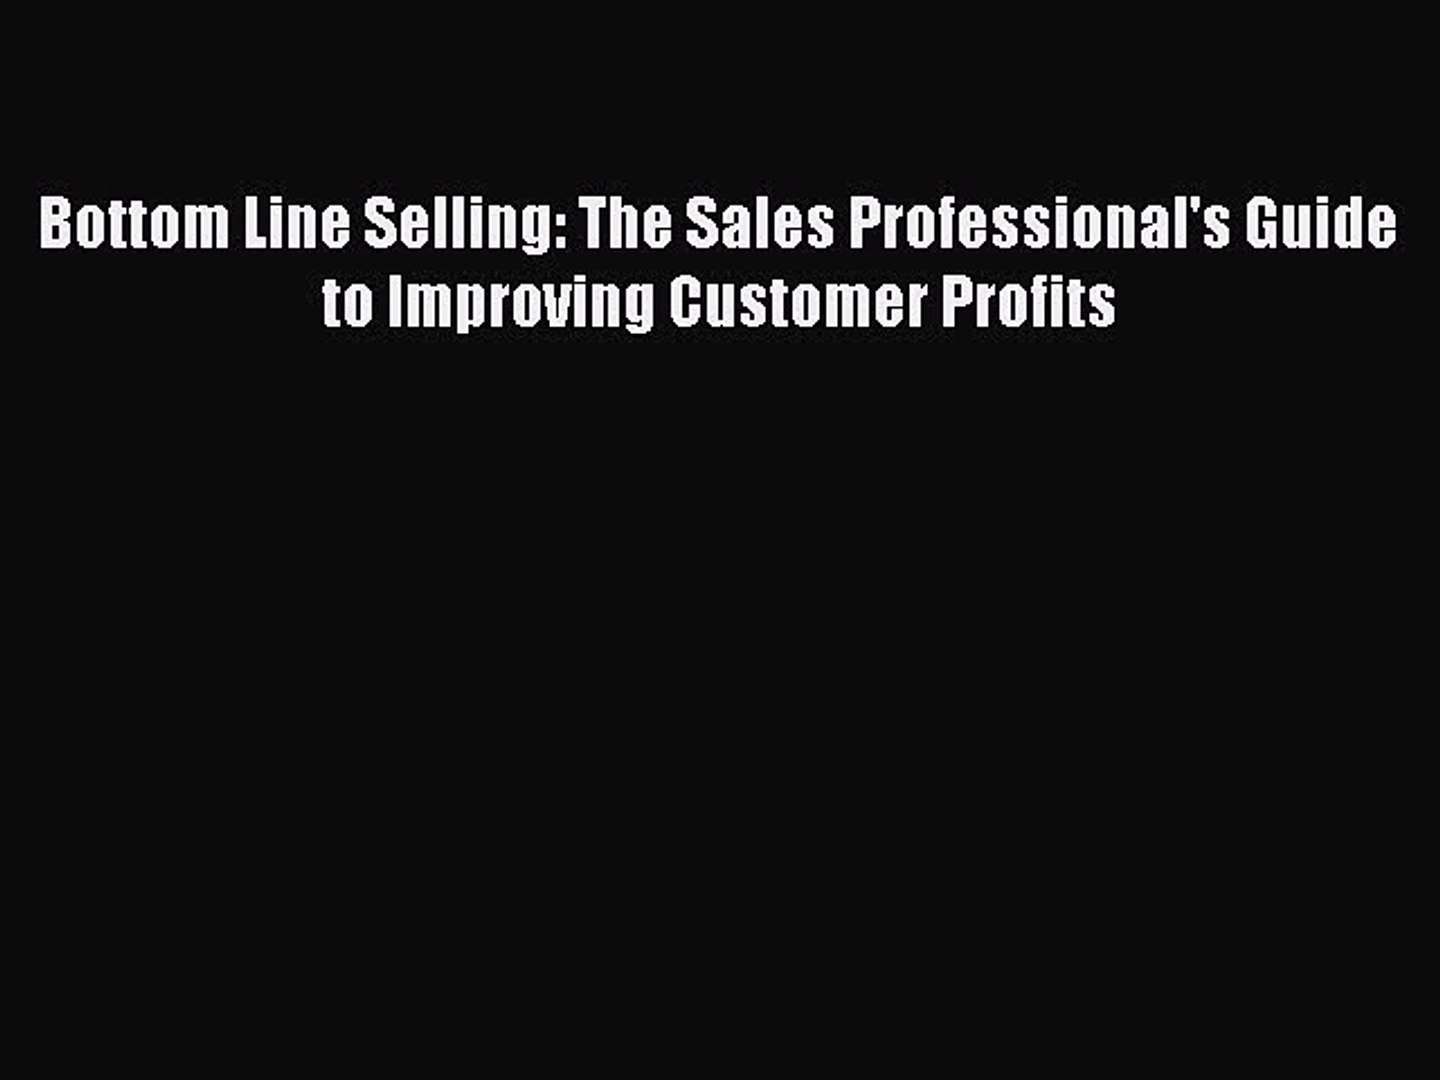 Download Bottom Line Selling: The Sales Professional's Guide to Improving Customer Profits